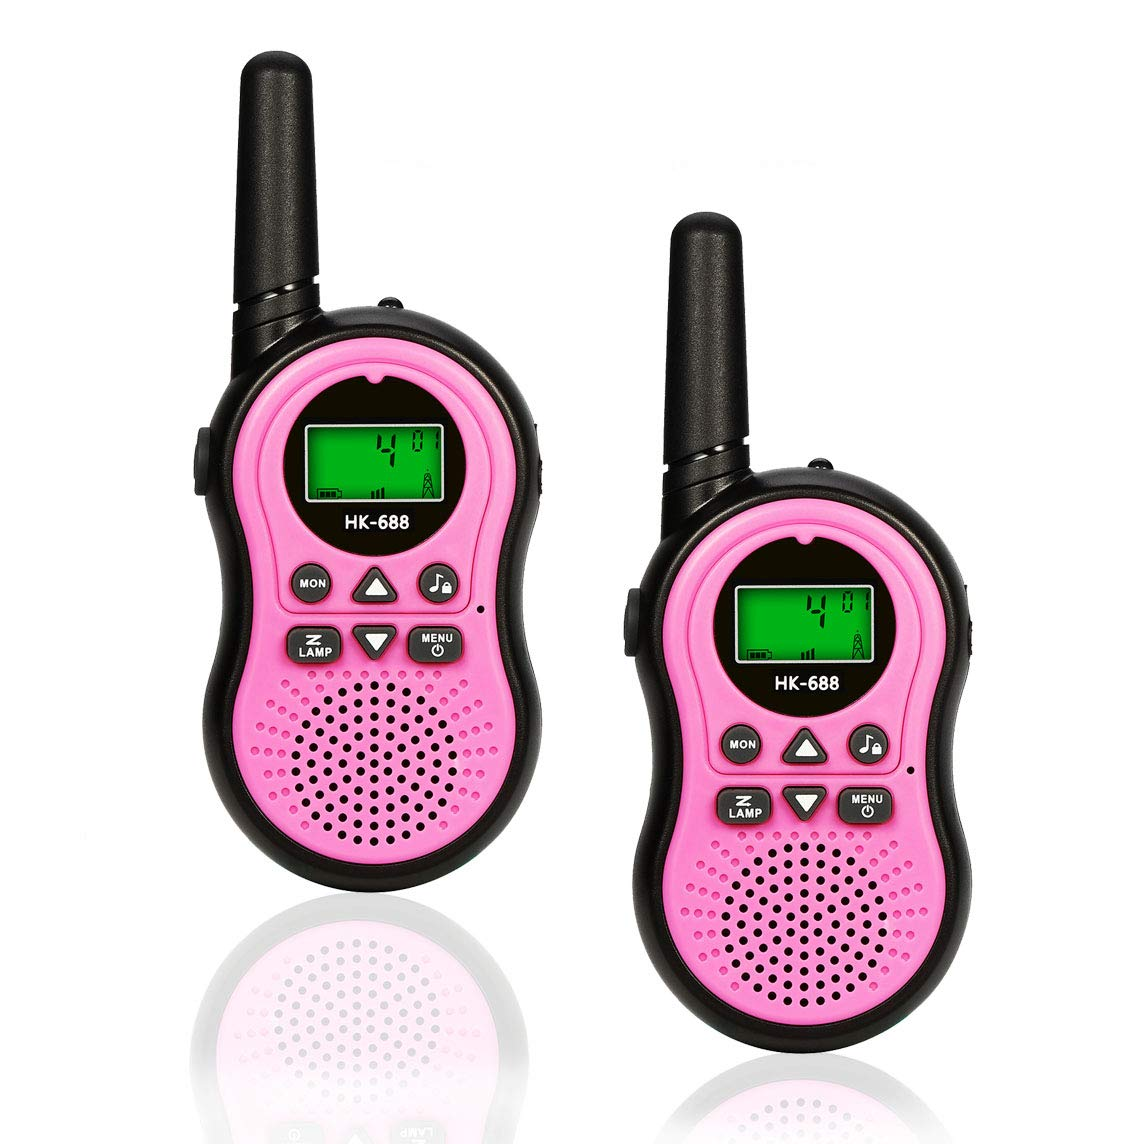 Toys for 3-12 Year Old Boys, BIBOYELF Walkie Talkies for Kids Toys for 3-12 Year Old Girls,5-9 Year Old Girl Birthday Gift,Outside Toys for Kids Outdoor Play,HK-688 1Pair(Pink)